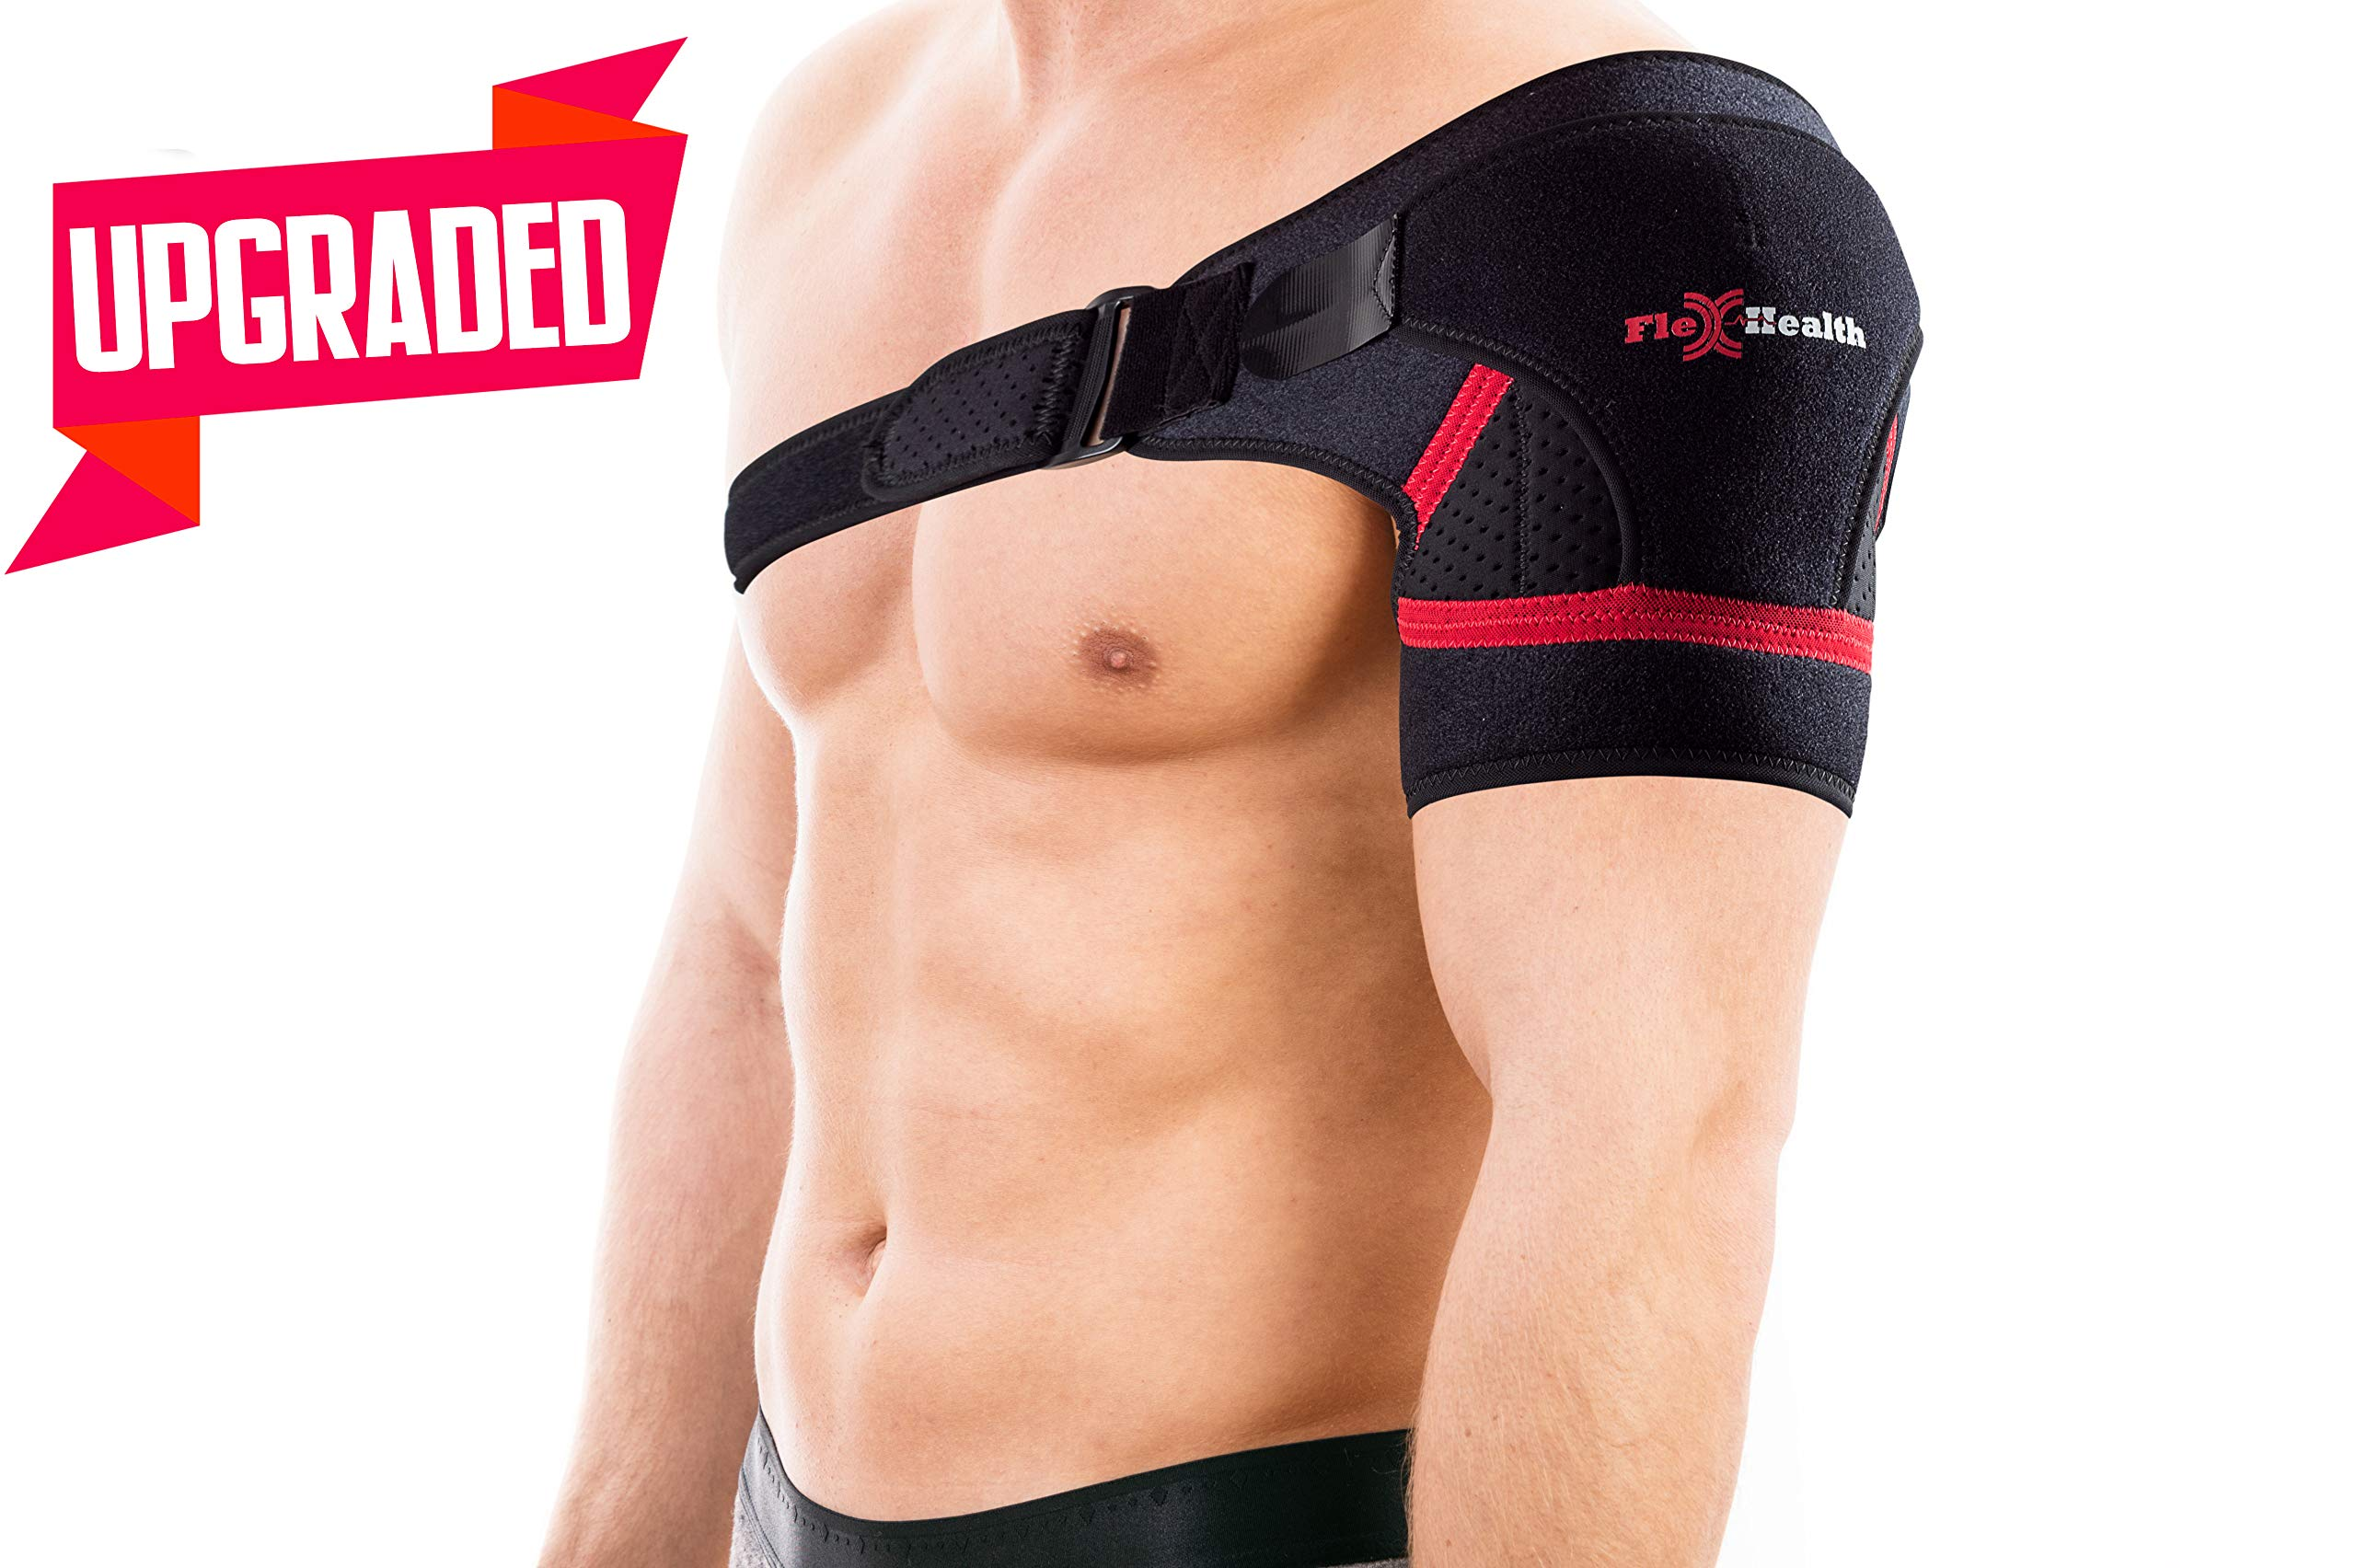 Support Shoulder Brace for Women and Men   3-Size Shoulder Immobilizer Compression Sleeve to Protect Rotator Cuff + AC Joints   Prevent Injuries & Relieve Sprain Pain and Soreness   Great GlFT